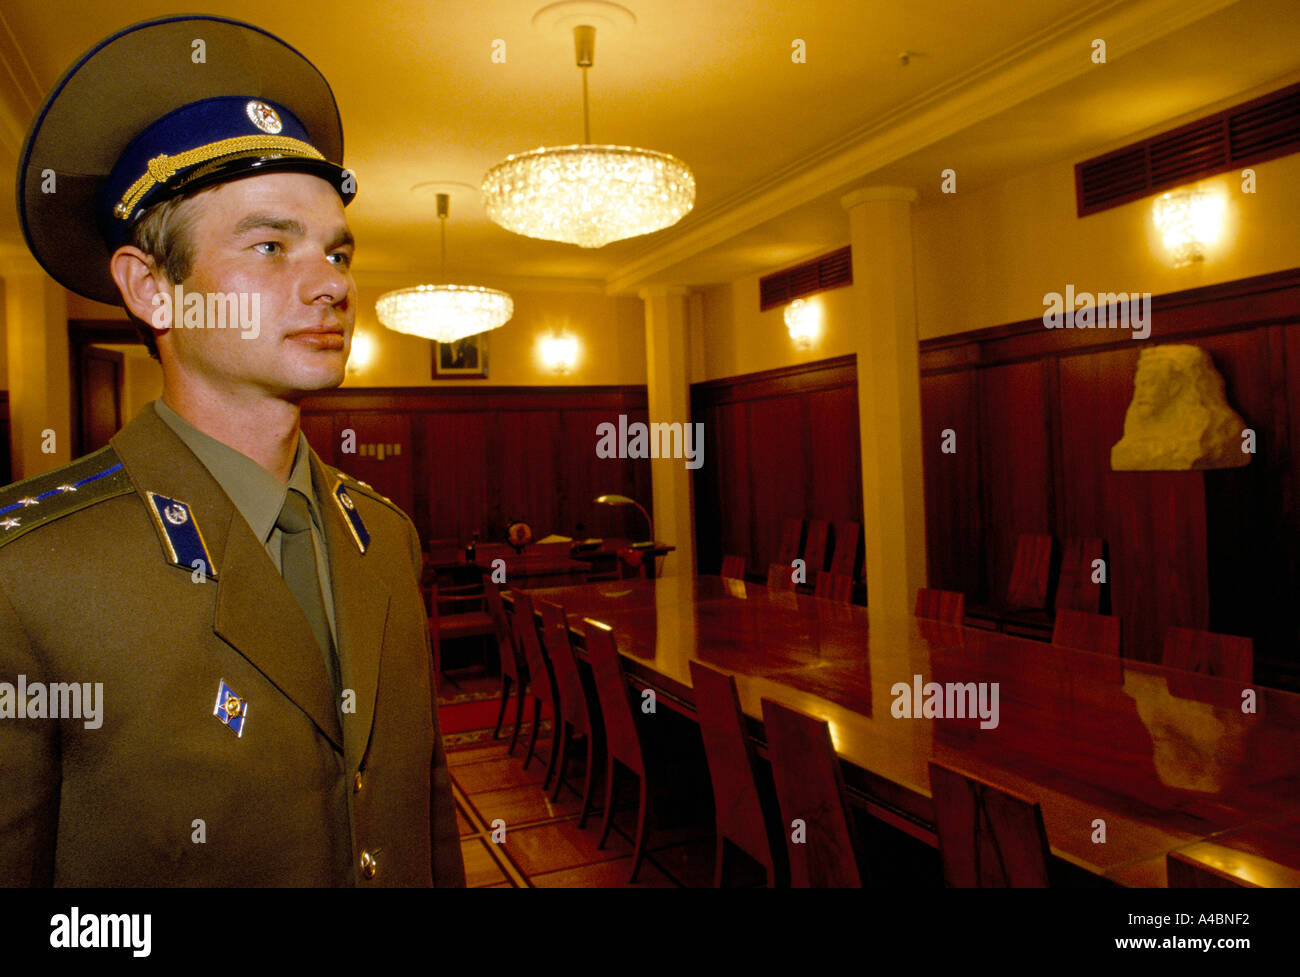 A KGB officer stands in the office of Yuri Adropov in the KGB's headquaters at the Lubyanka building, Moscow Russia 1990 - Stock Image